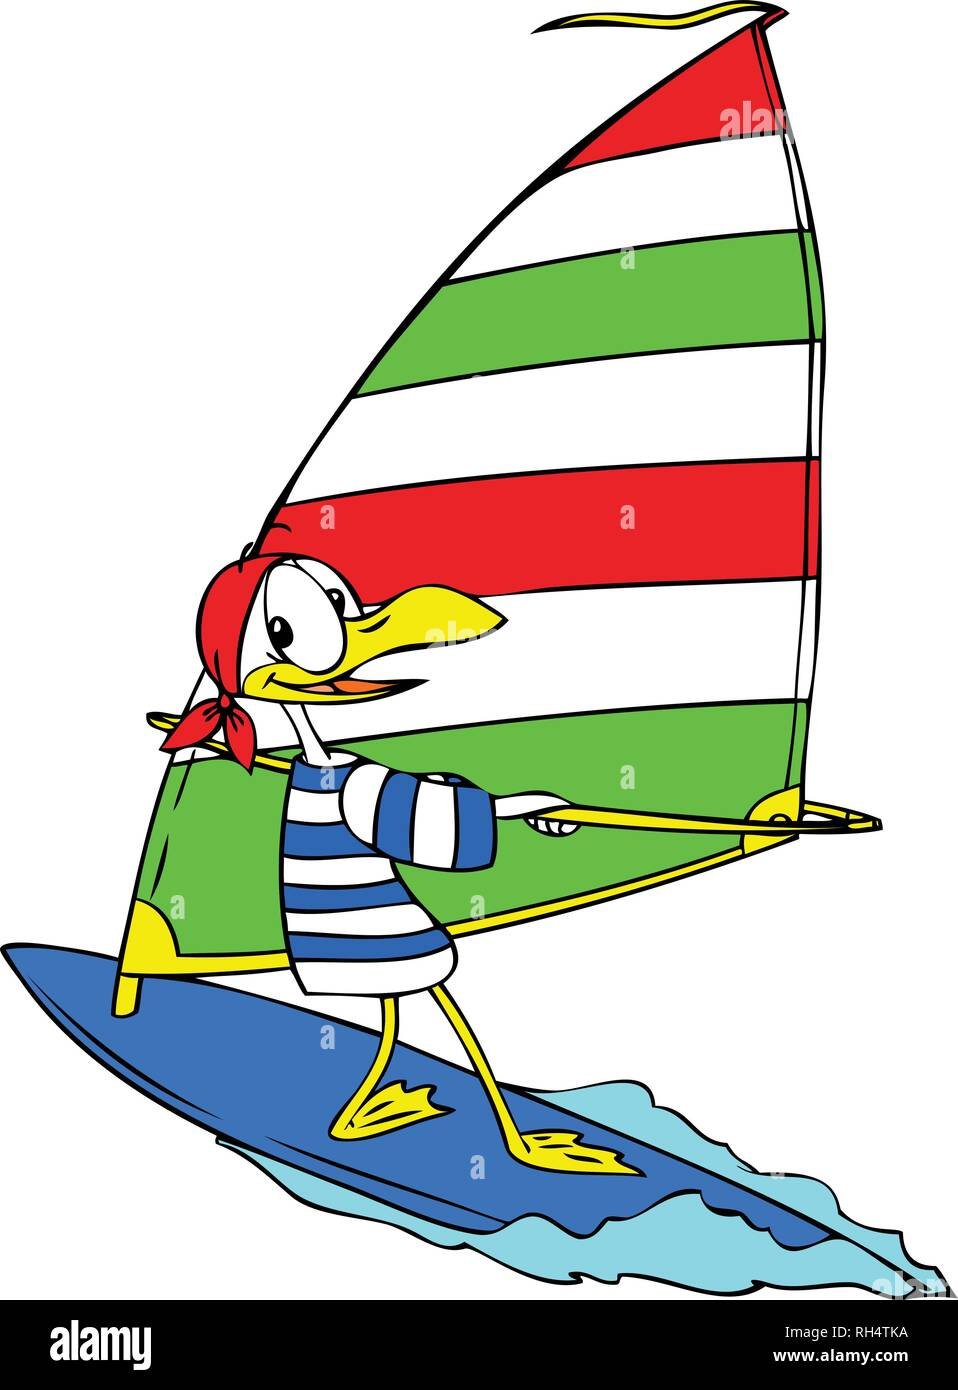 cartoon seagull wind surfing vector illustration - Stock Vector